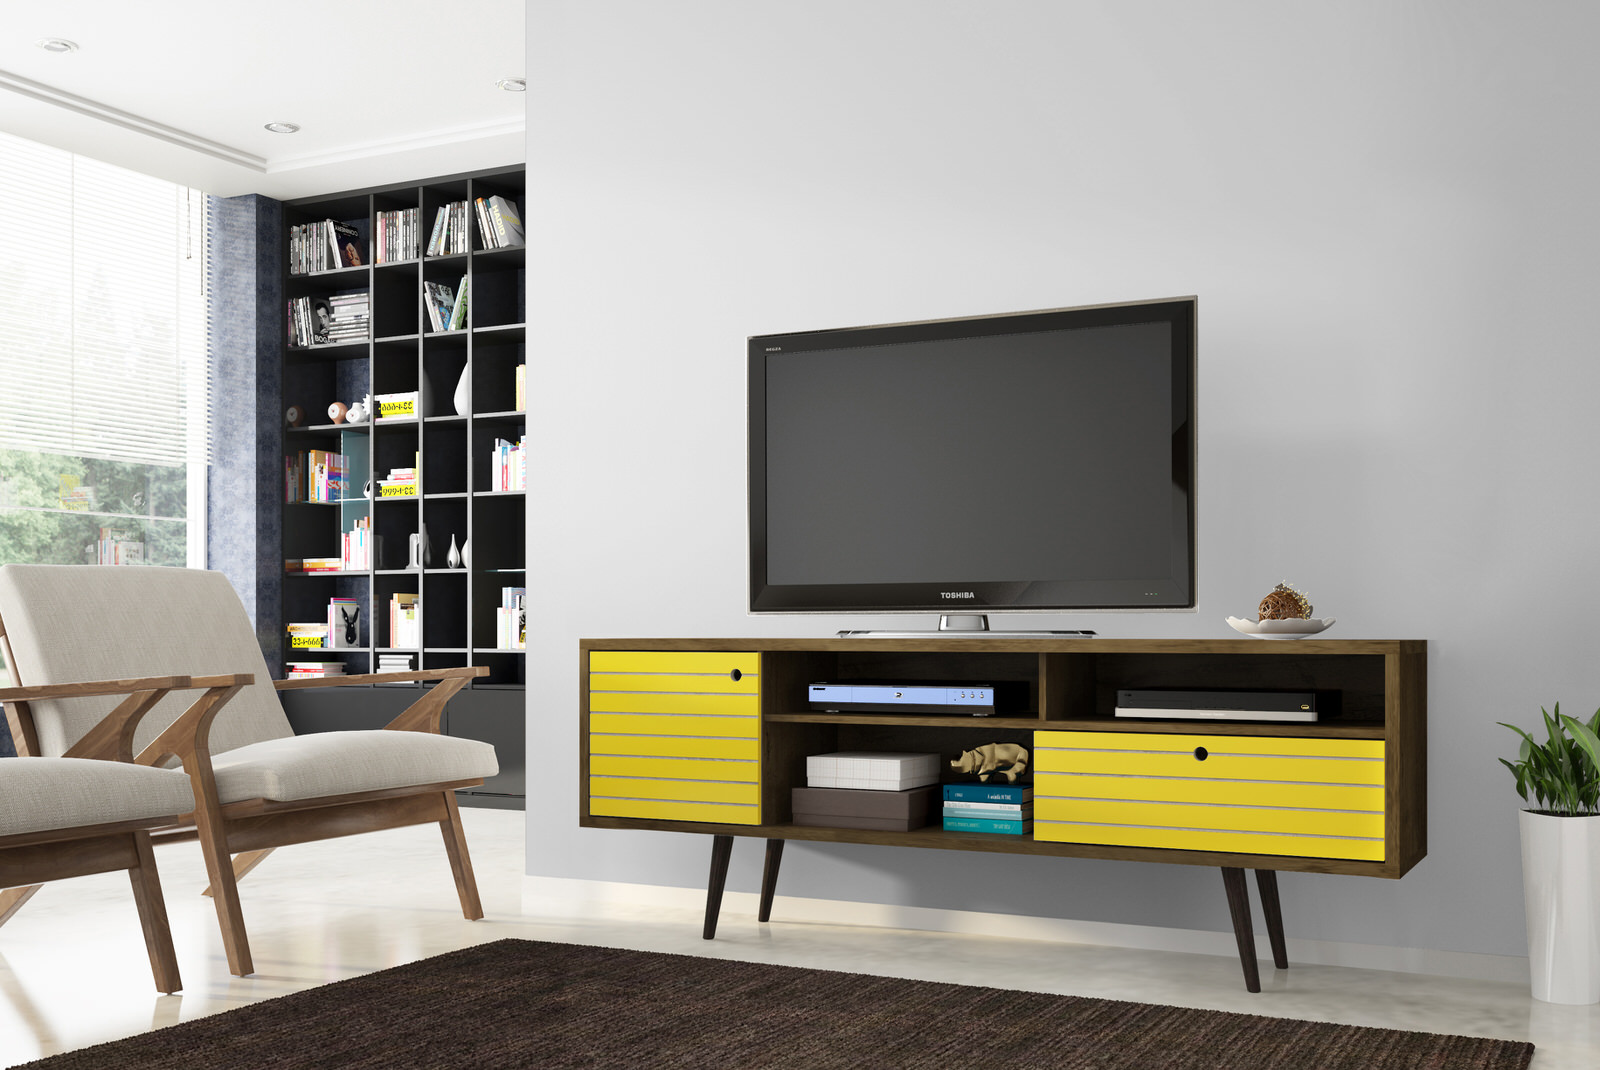 Liberty Rustic Brown U0026 Yellow 70.86 Inch Mid Century   Modern TV Stand W/ 4  Shelving Spaces, 1 Drawer U0026 Solid Wood Legs By Manha